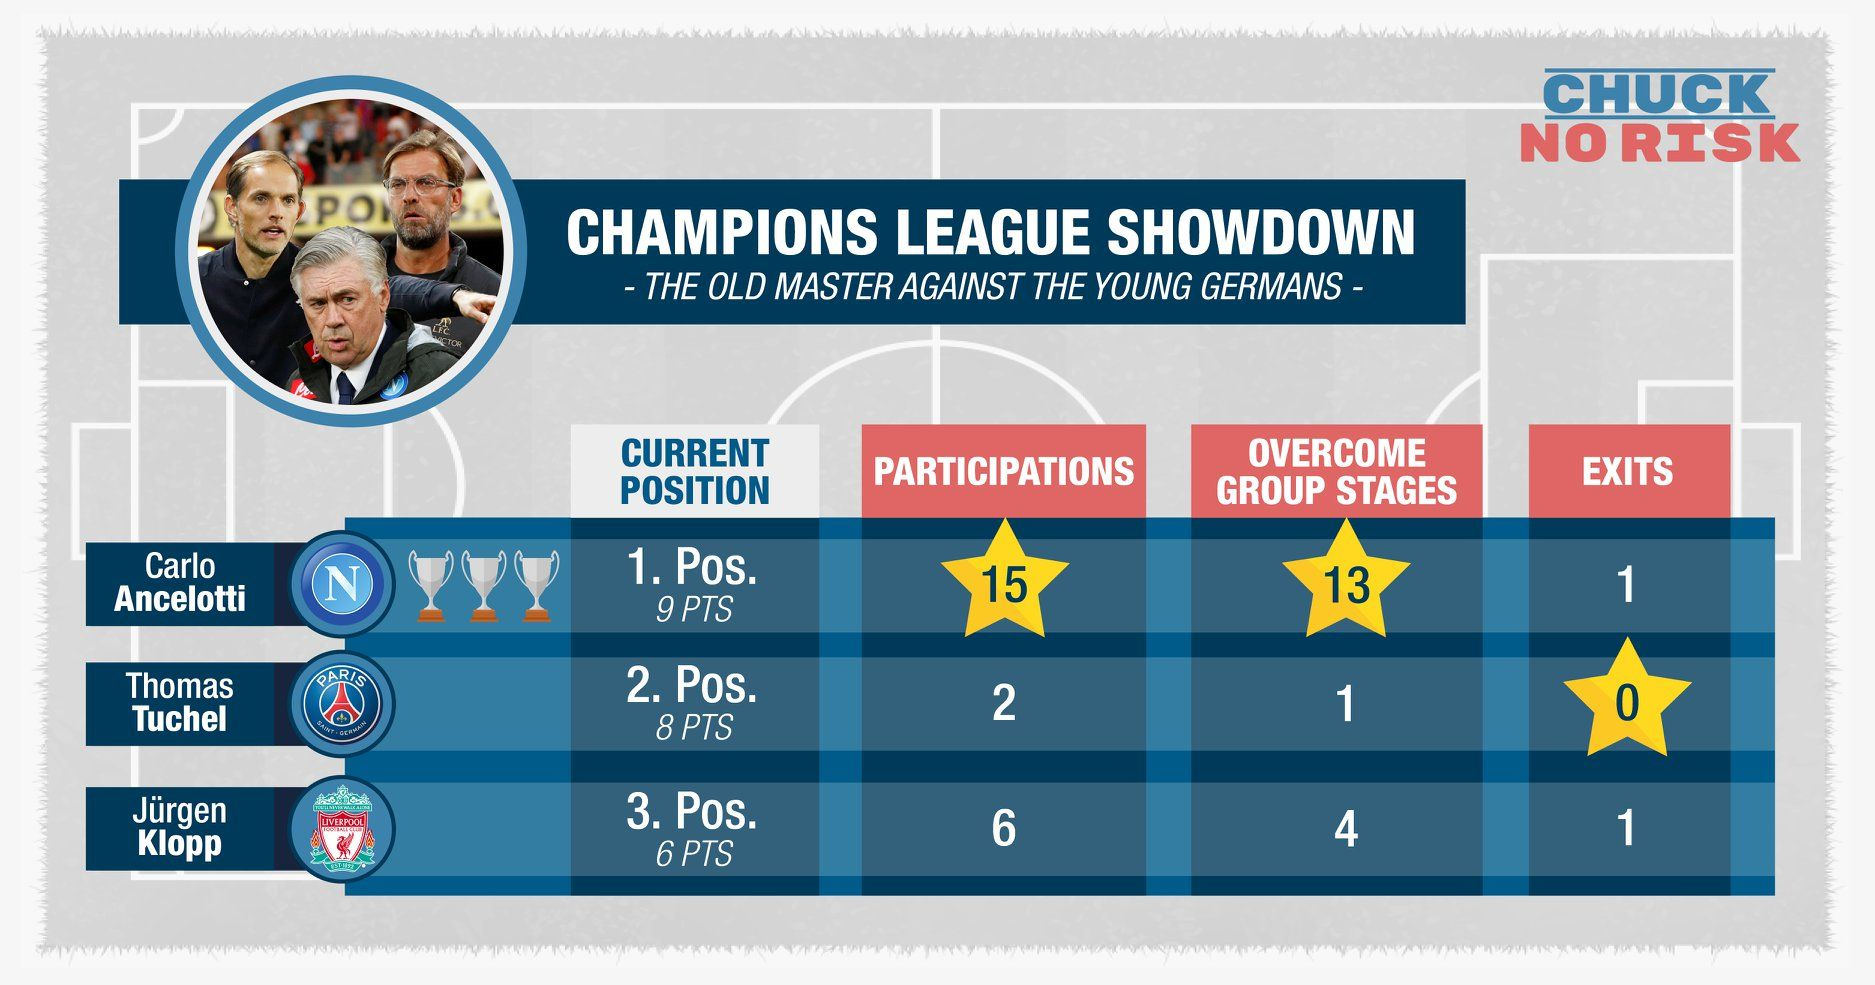 Champions League Showdown Had 2 Clear Youngster Winners Liverpool With Jurgen Klopp And Psg With Thomas Tuchel Leaving Napoli And 3 Ti Statistik Infografik